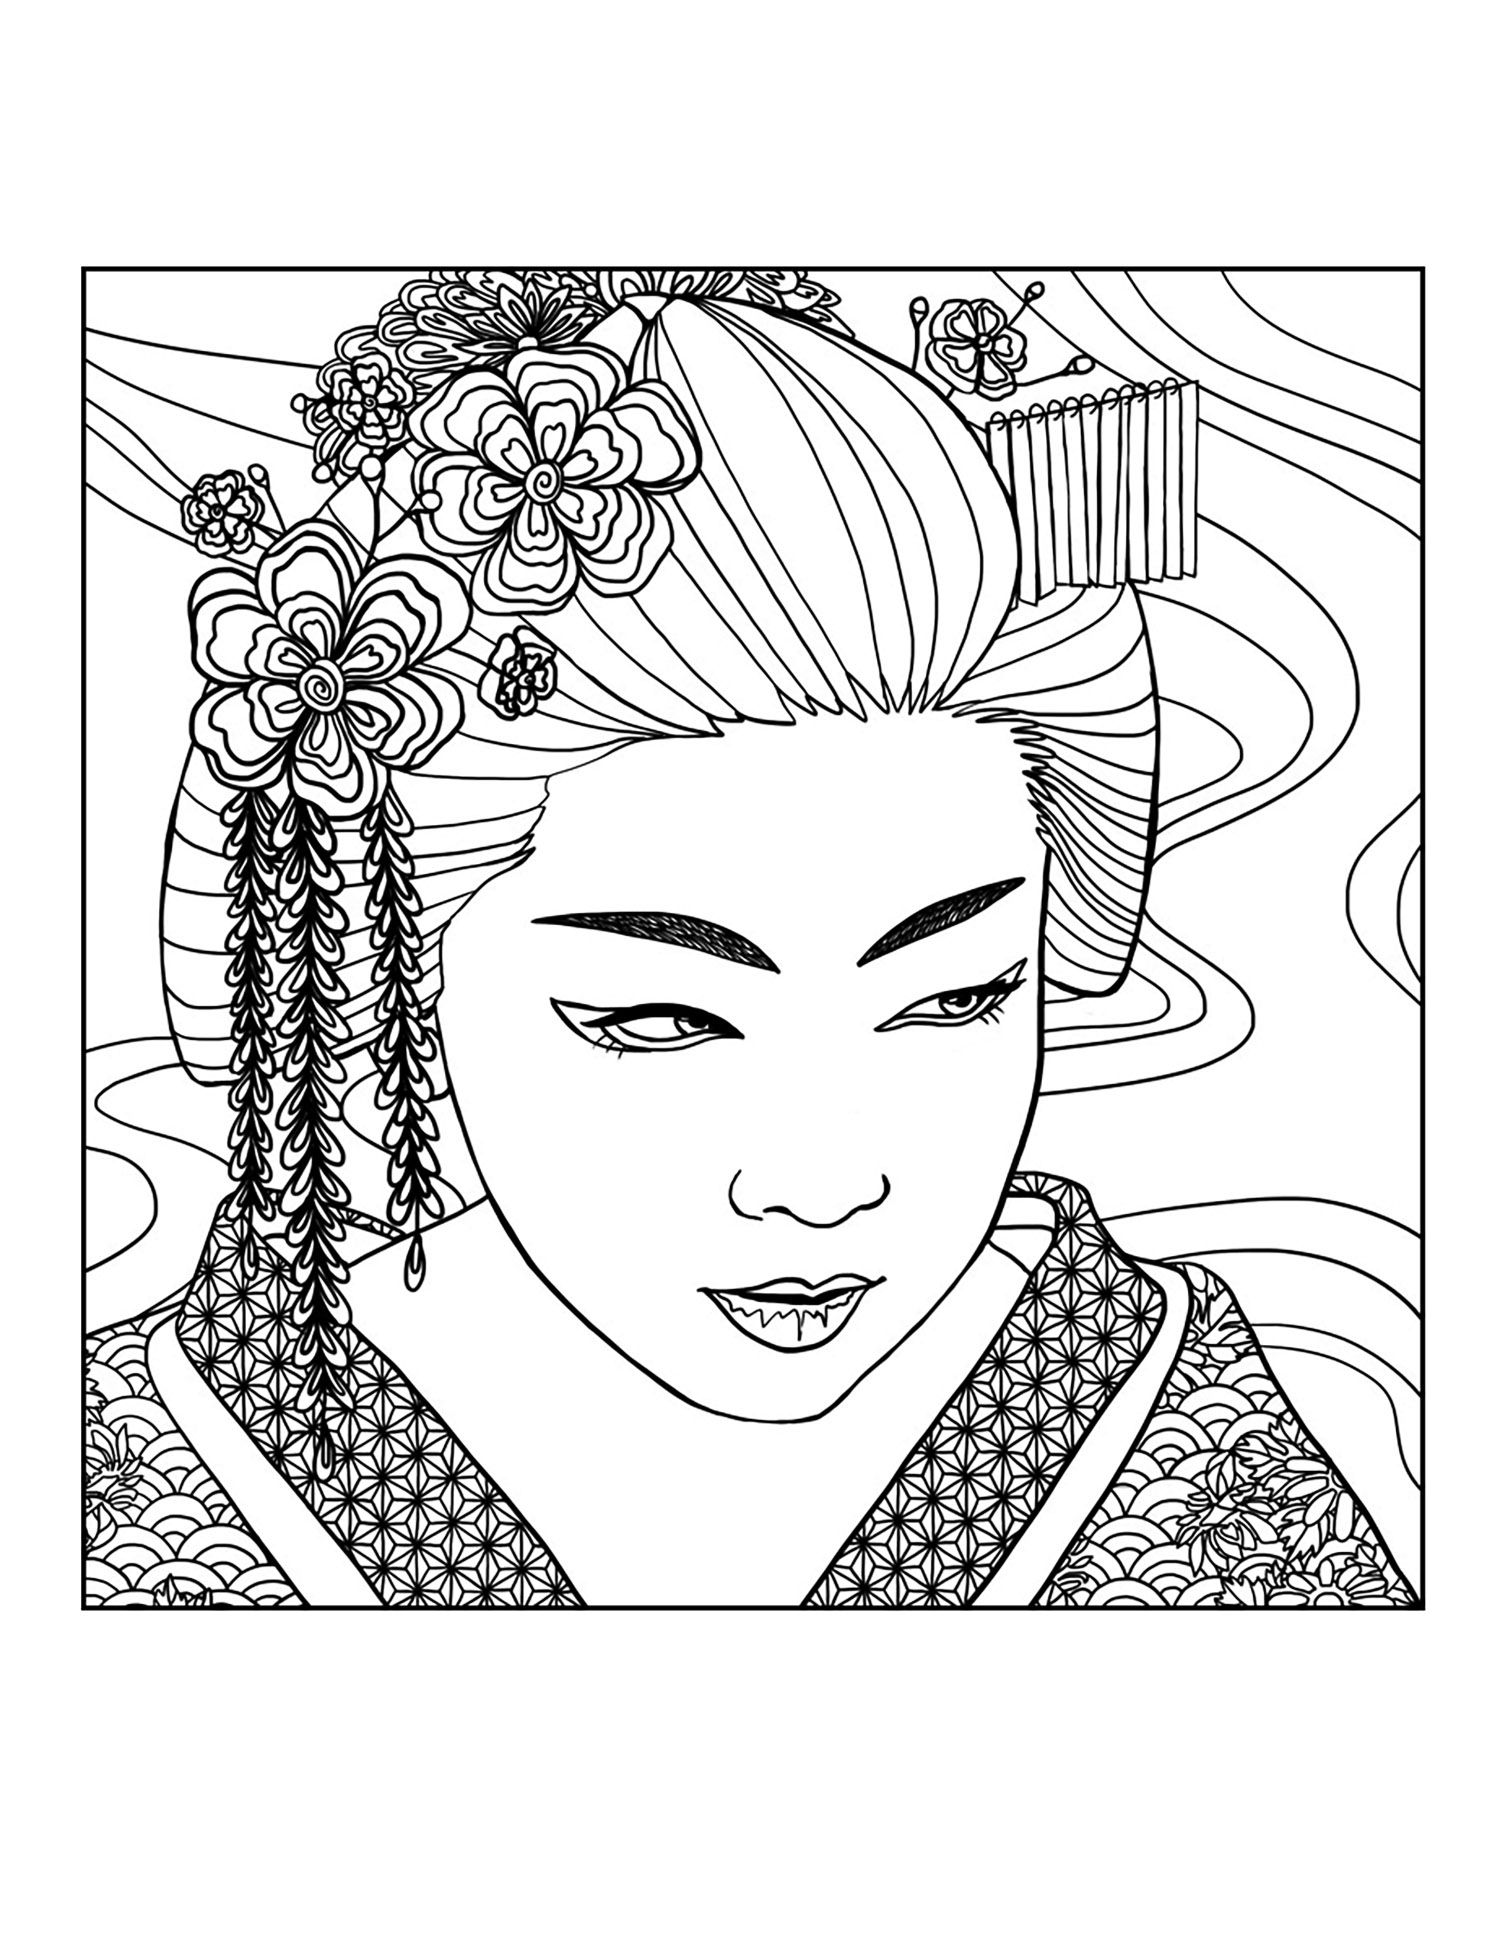 Free coloring page coloring adult geisha face by mizu Exclusive